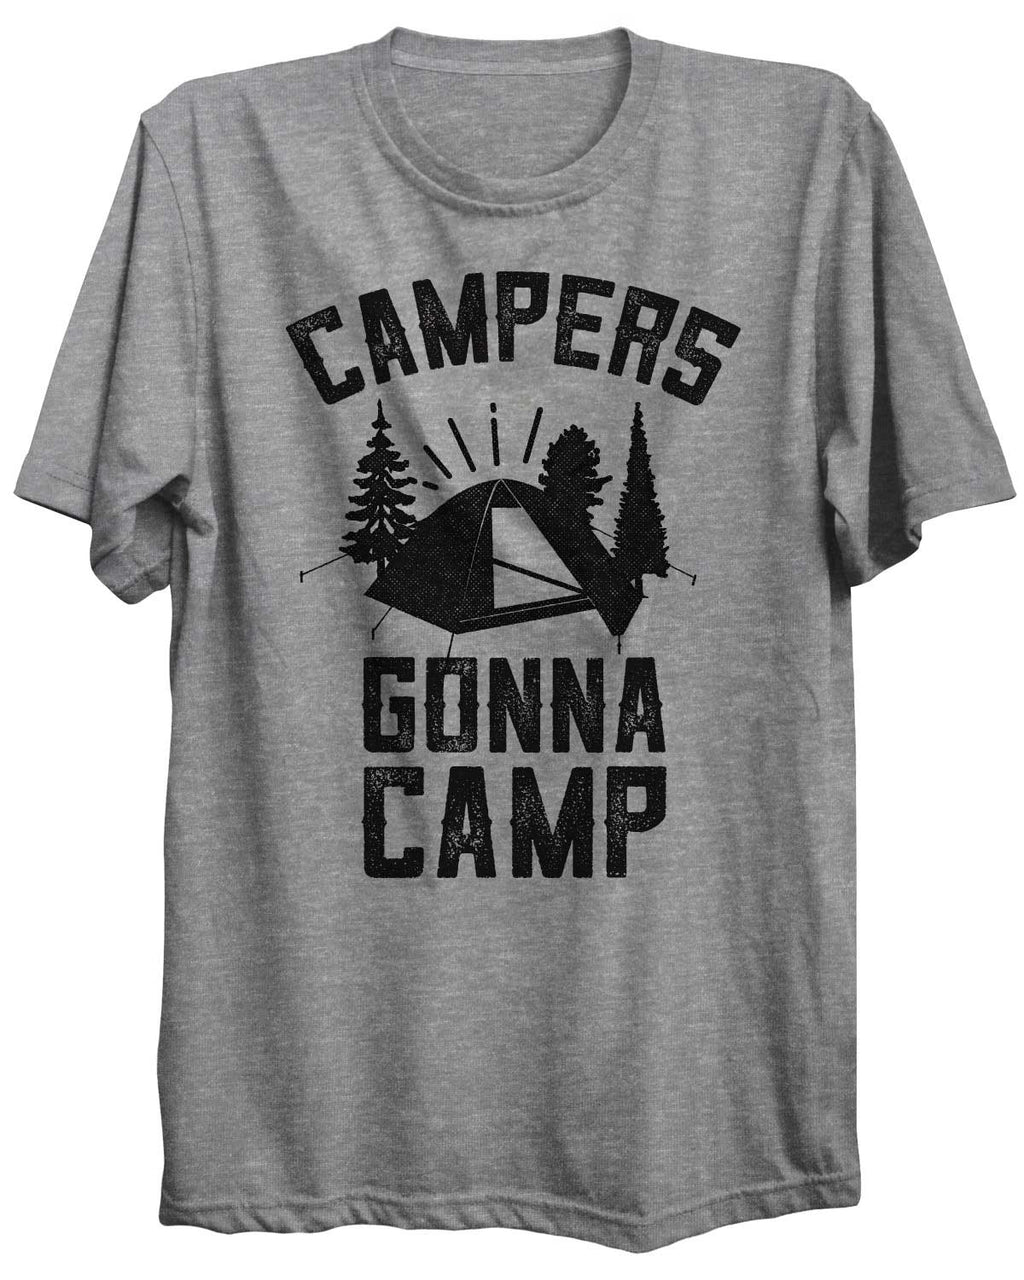 Campers Gonna Camp Camping Outdoors Unisex Tshirt